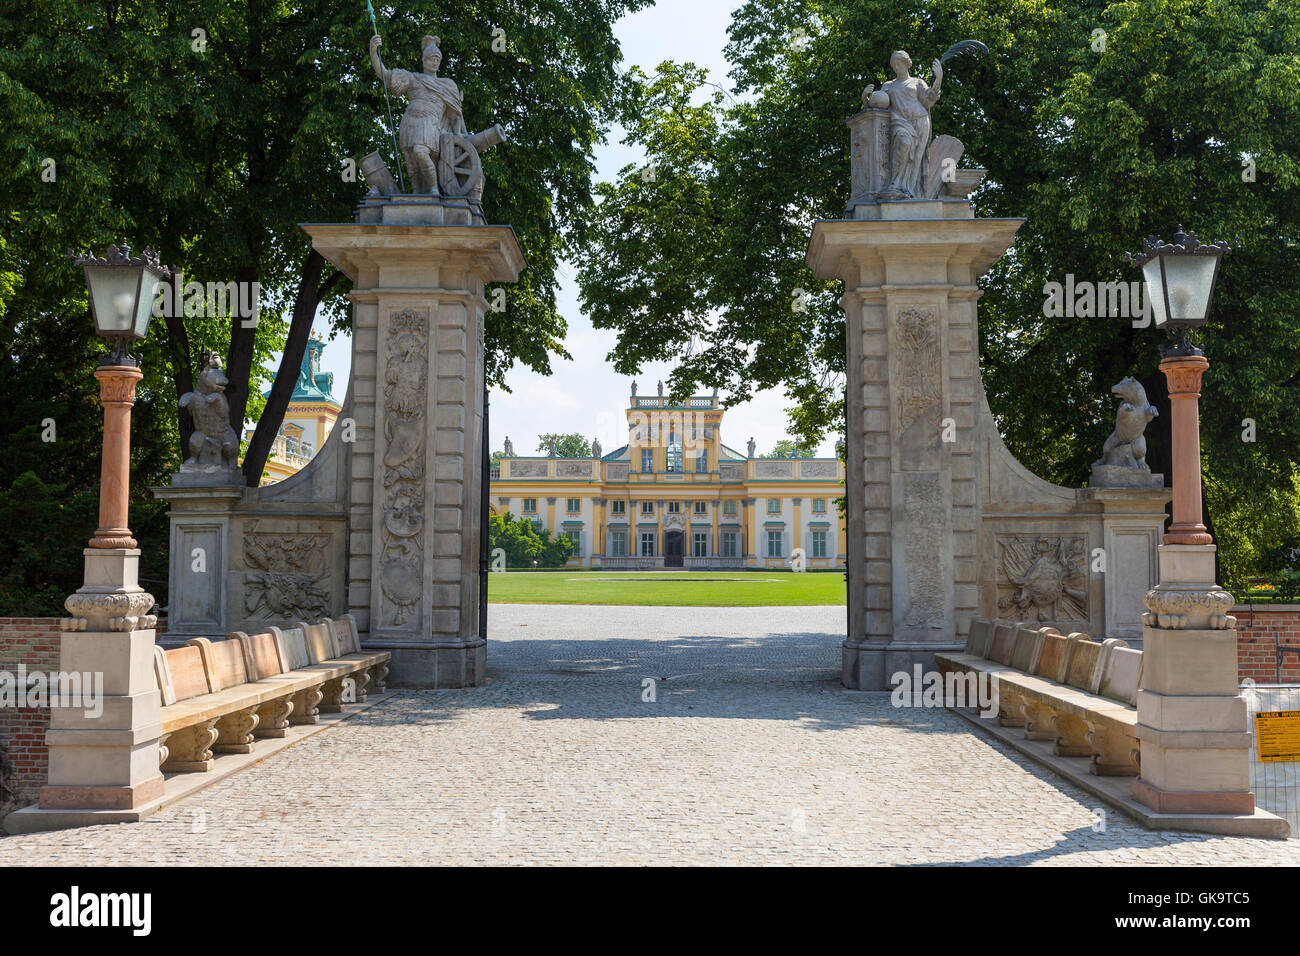 19th century Wilanow Palace in Warsaw, Poland formal garden - Stock Image